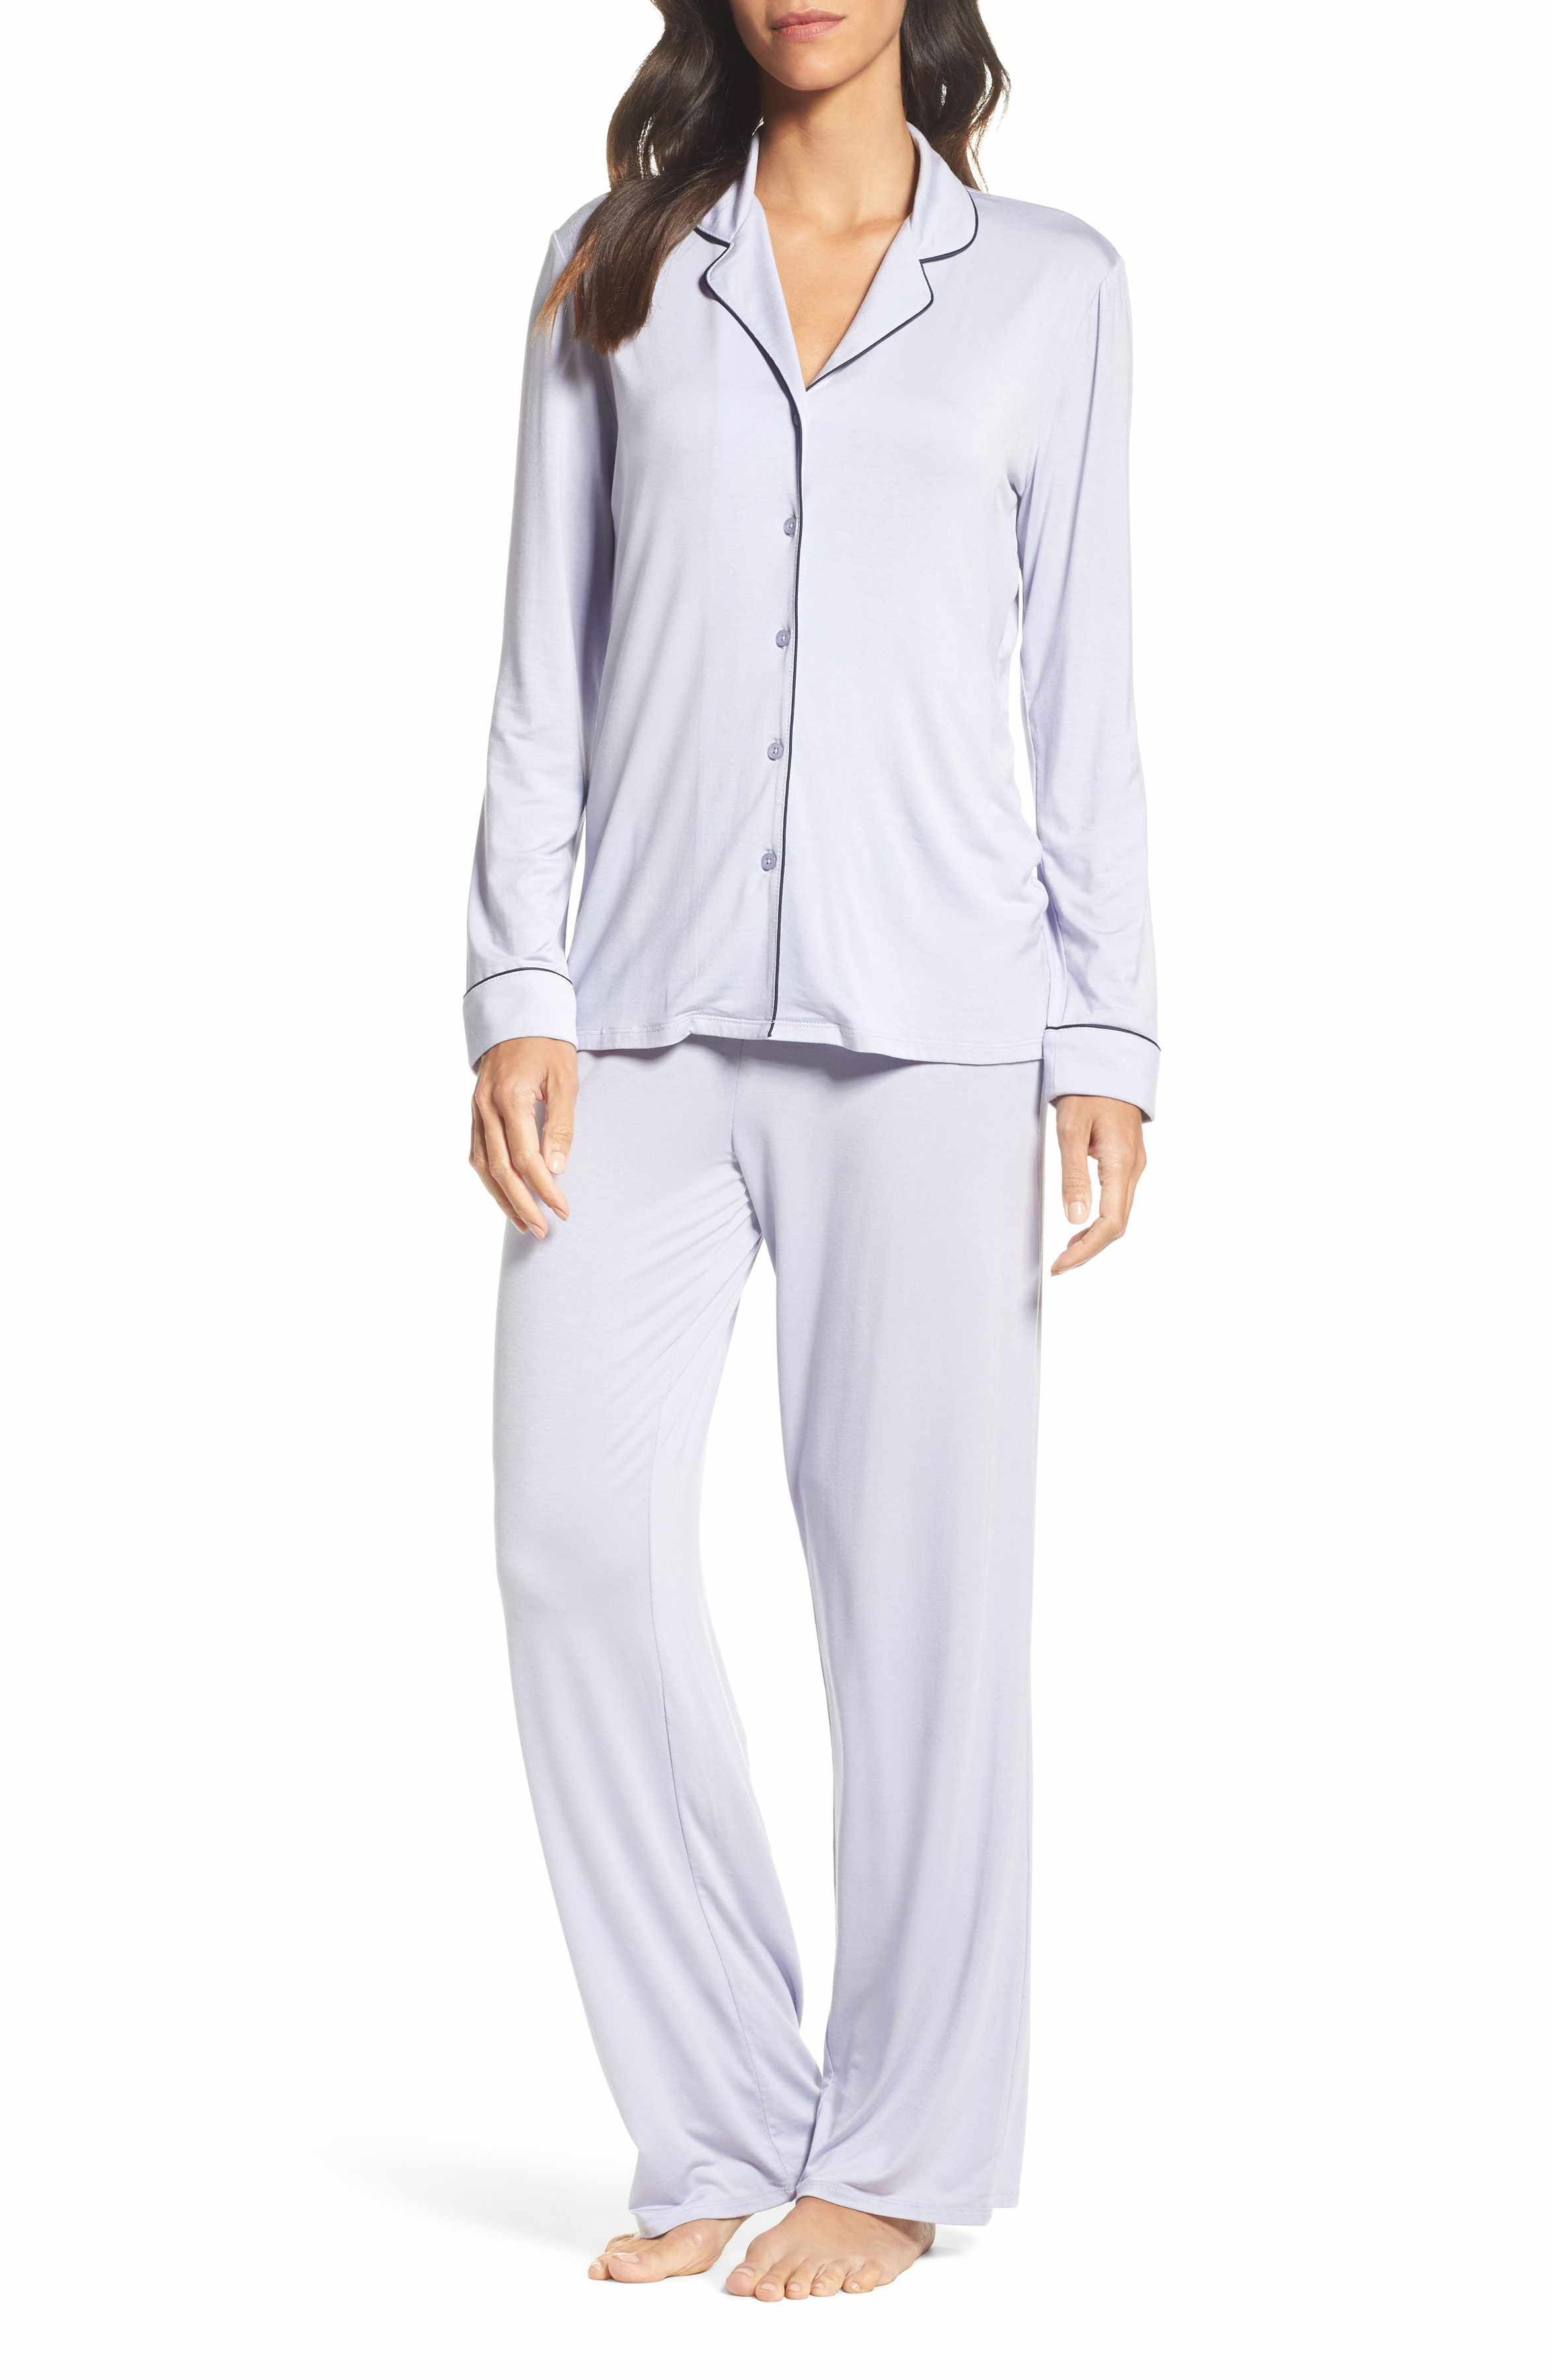 47abe302060 You can NEVER go wrong with pajamas for Christmas!- Nordstrom Lingerie  Moonlight Pajamas